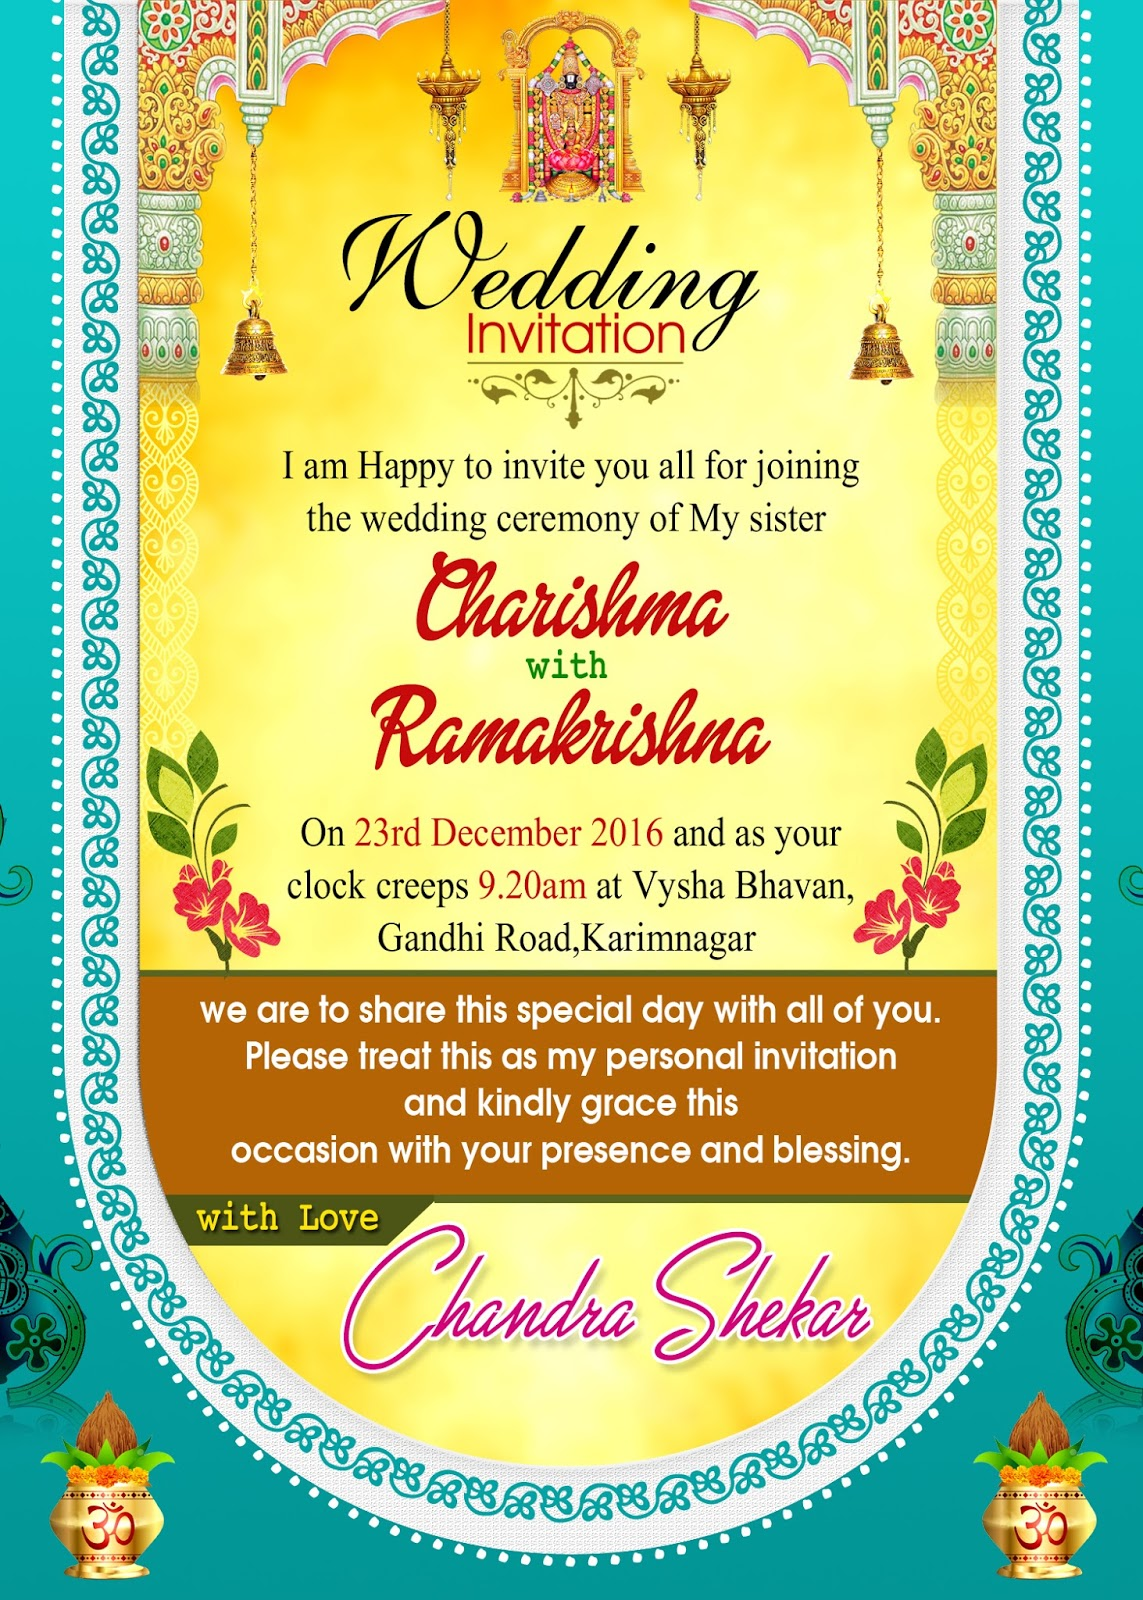 Indian wedding invitation wordings psd template free for brothers indian wedding card design psd template free downloads for brothers and sisters stopboris Image collections